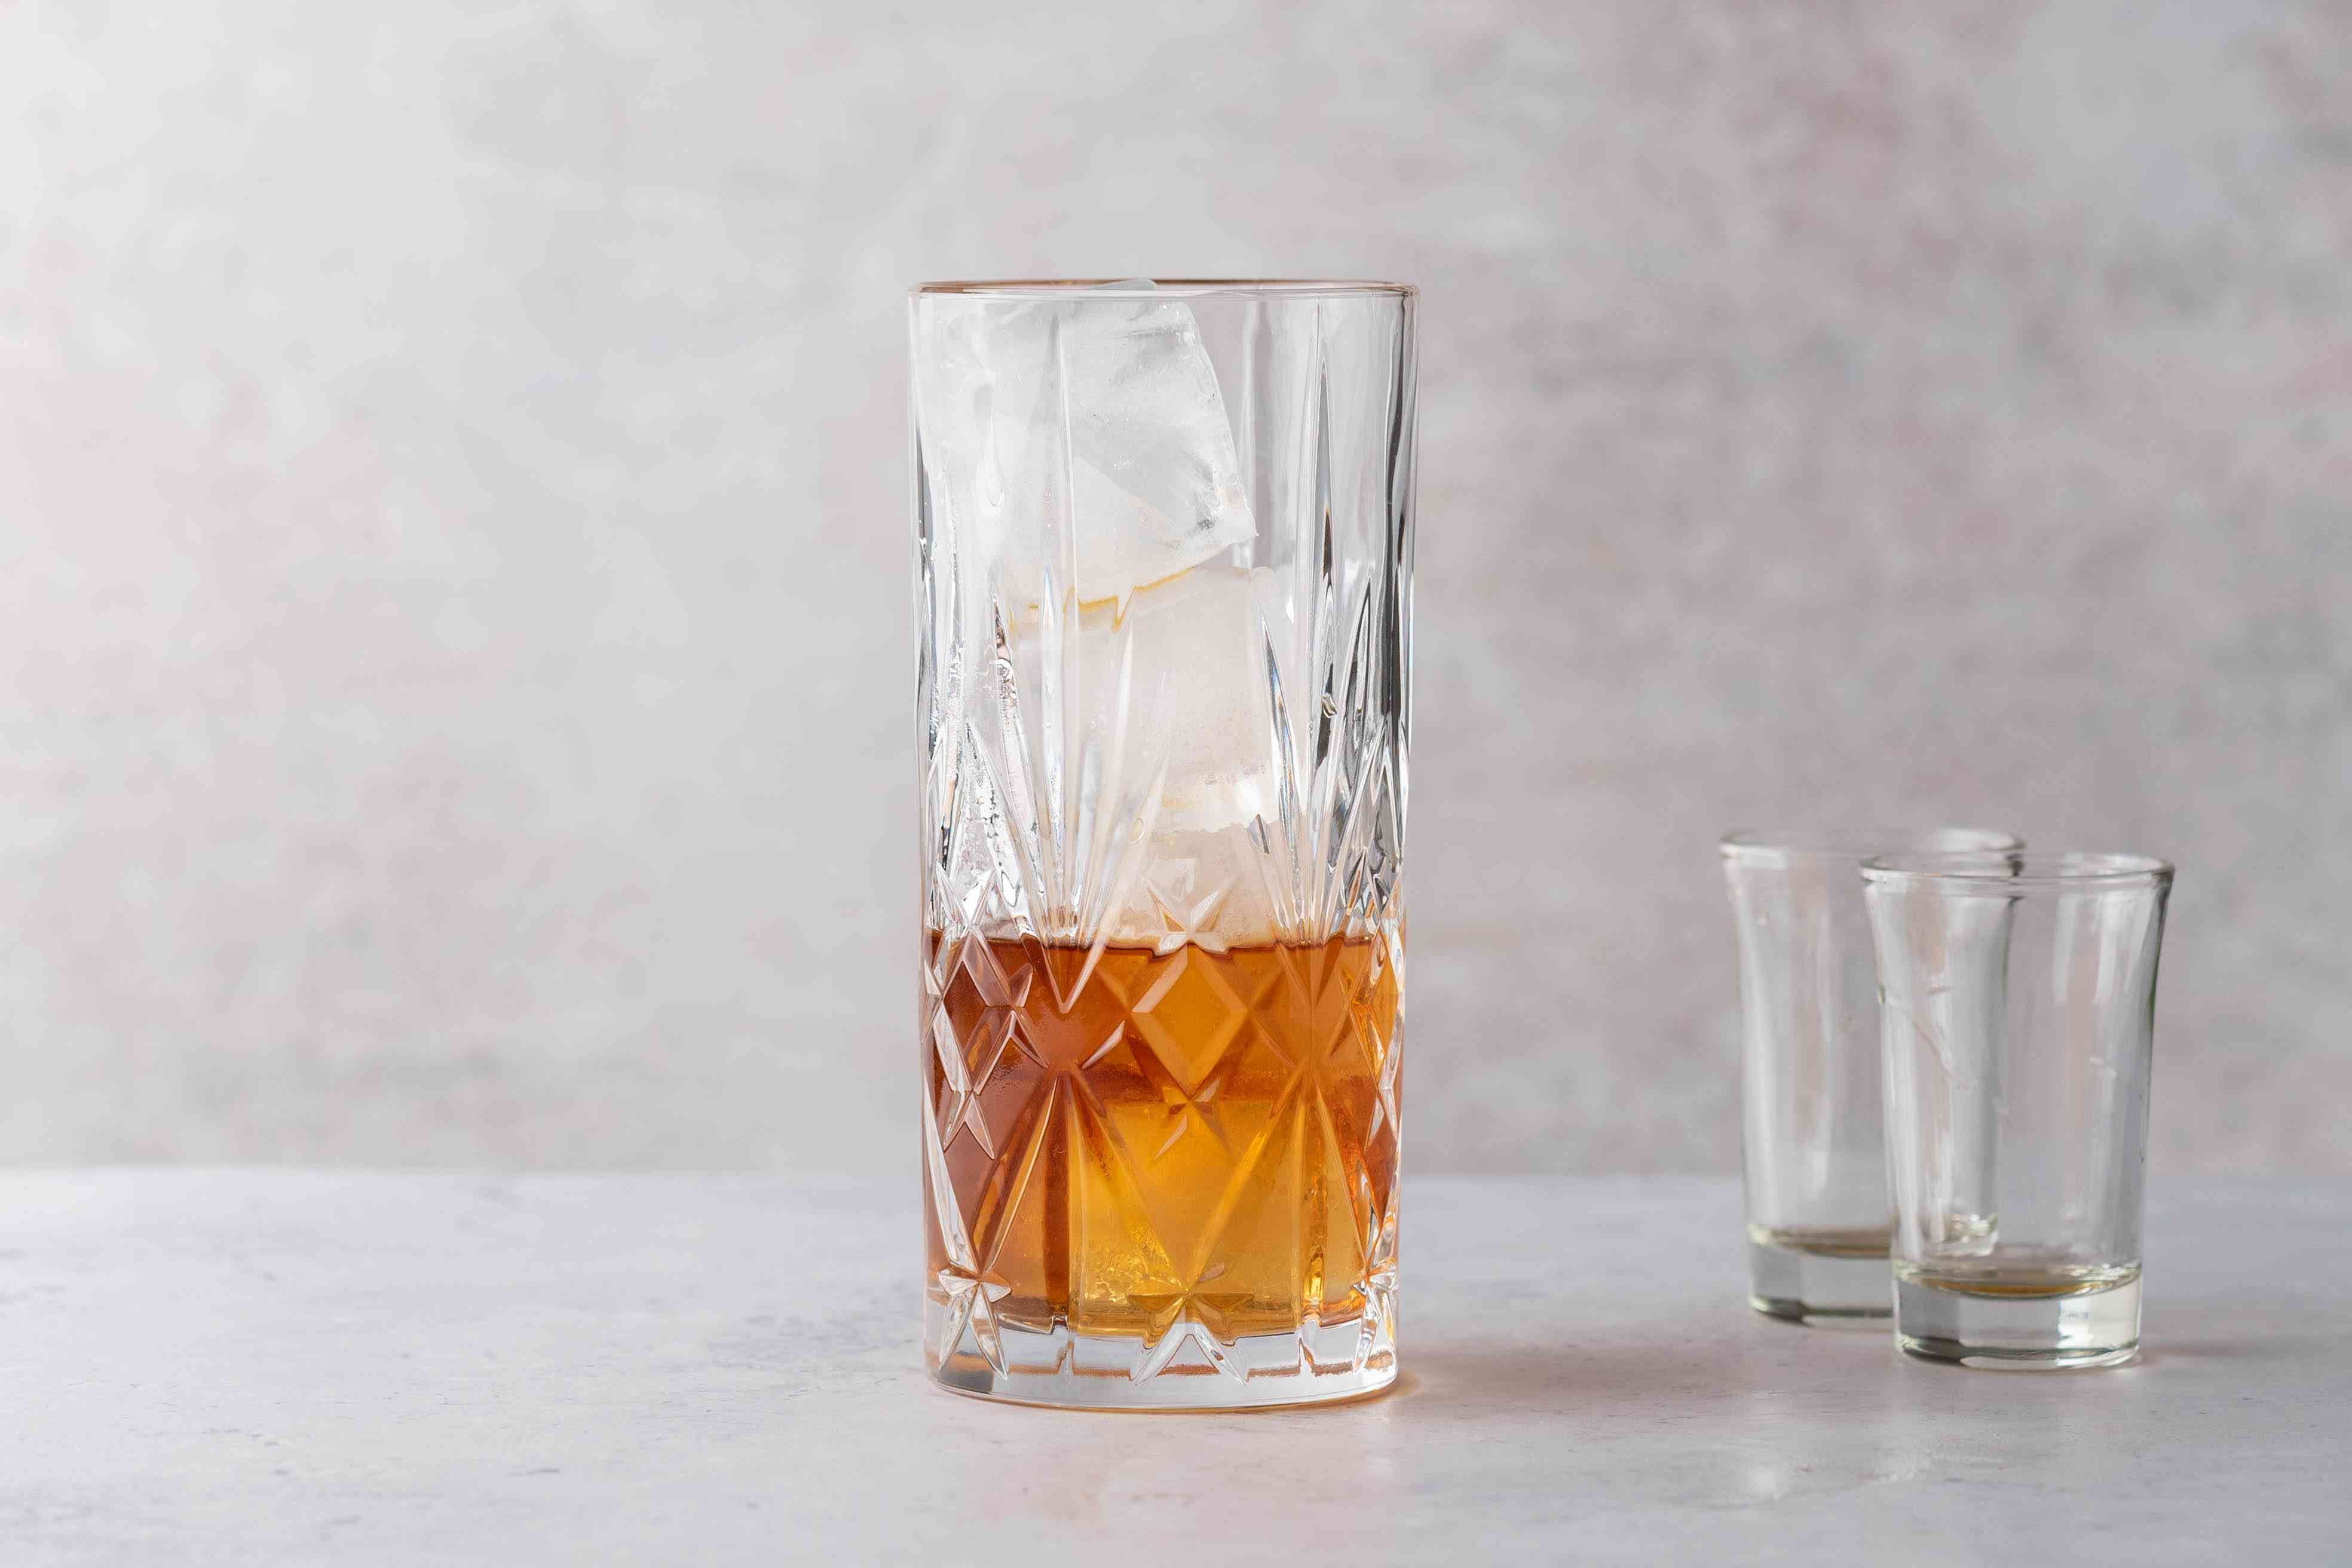 In a collins glass filled with ice, pour the dark rum and amaretto